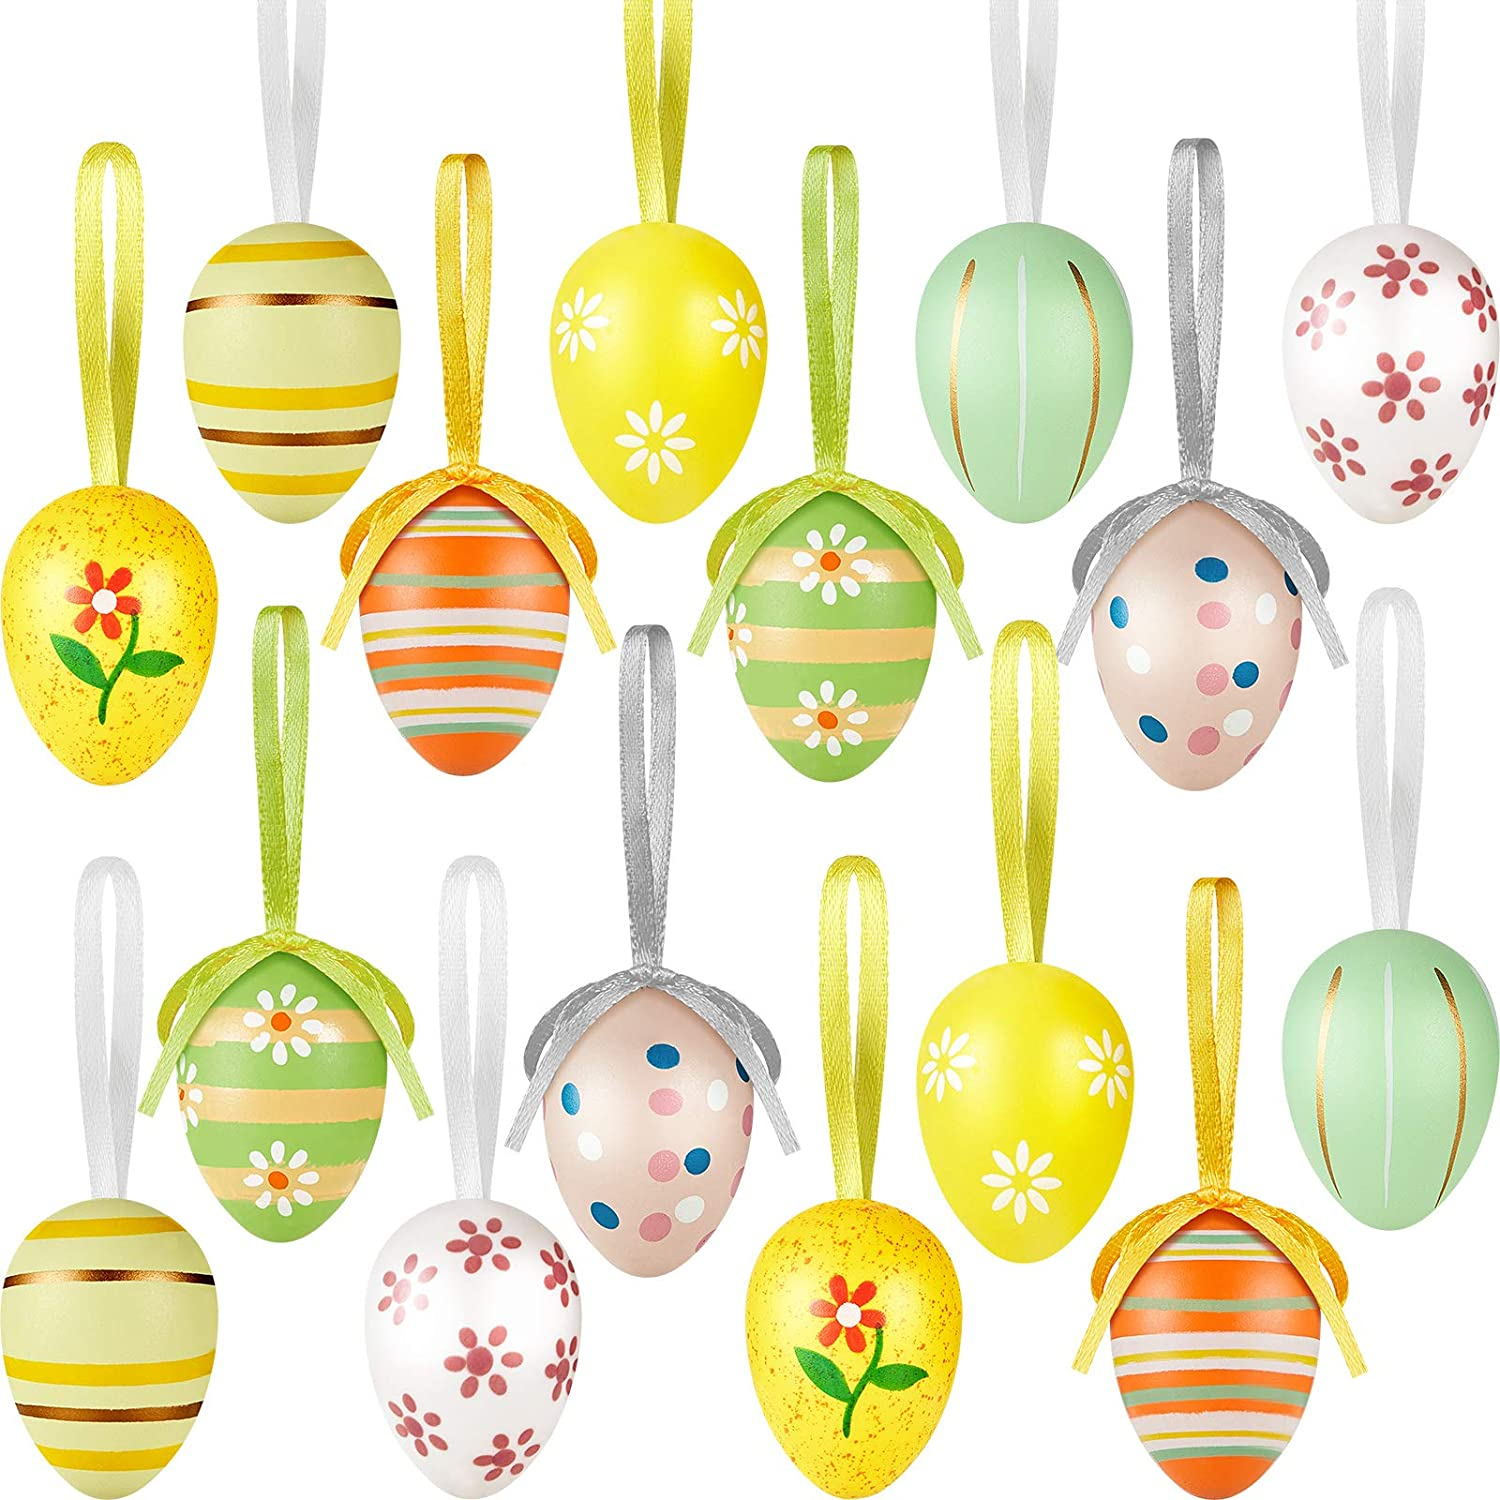 24 Pieces Easter Hanging Plastic Eggs Colorful Hanging Eggs Ornaments Easter Decorative Hanging Eggs Easter Eggs Tree Hanging Decoration with Ropes for DIY Crafts Party Favor Home Decor, 8 Styles